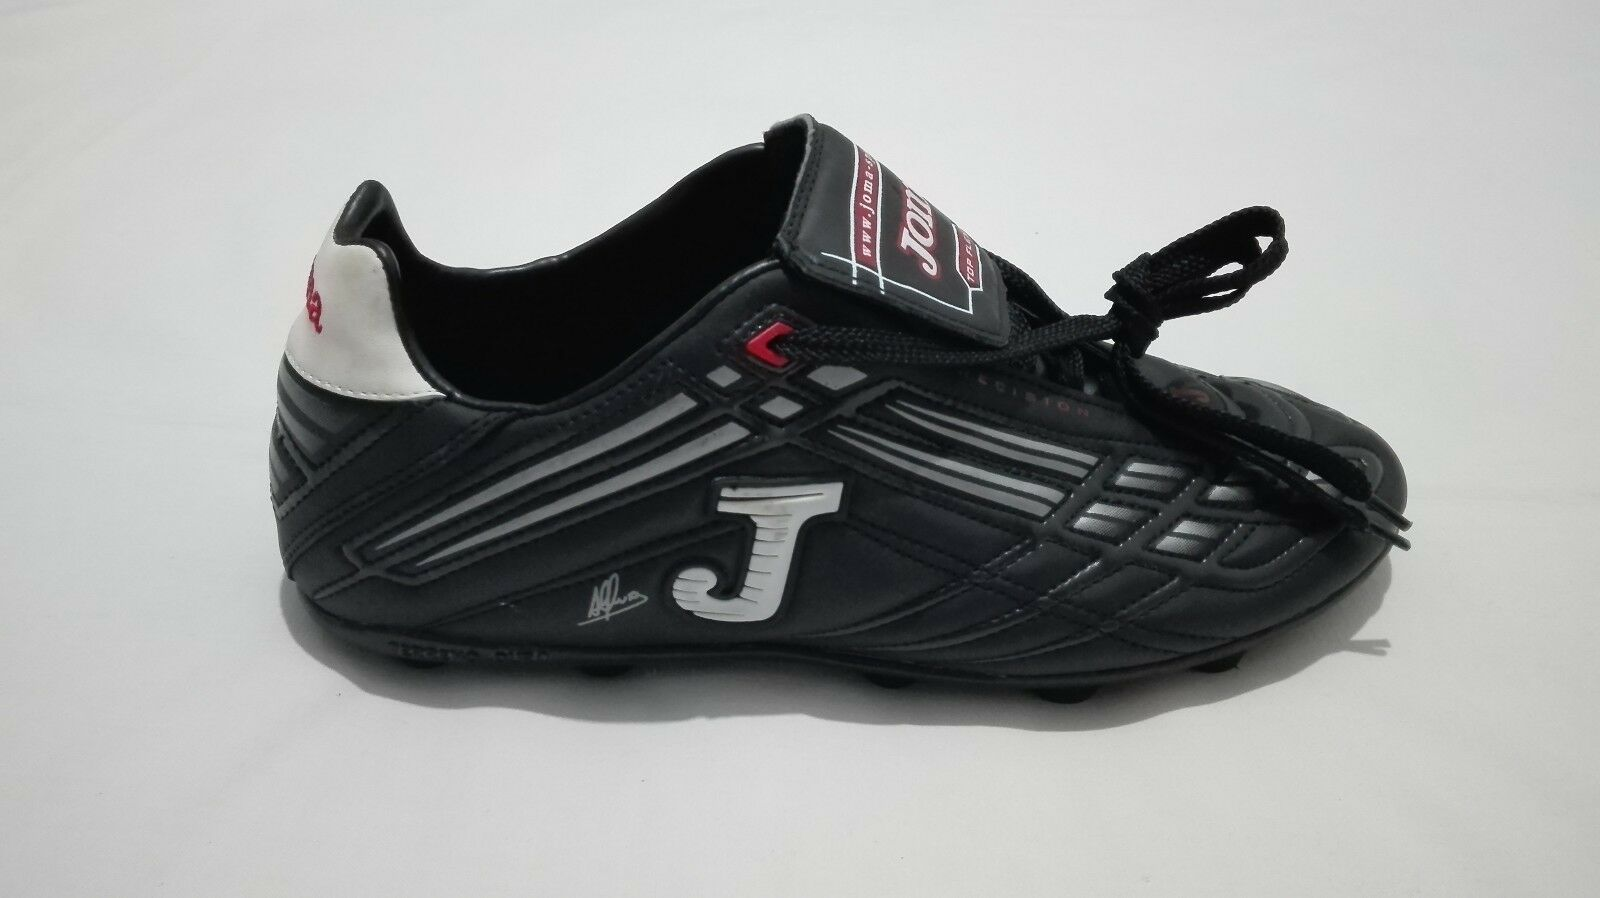 Joma Alfonso Barca Real signed 90's vintage soccer stivali footbtutti sautope, Dimensione 10